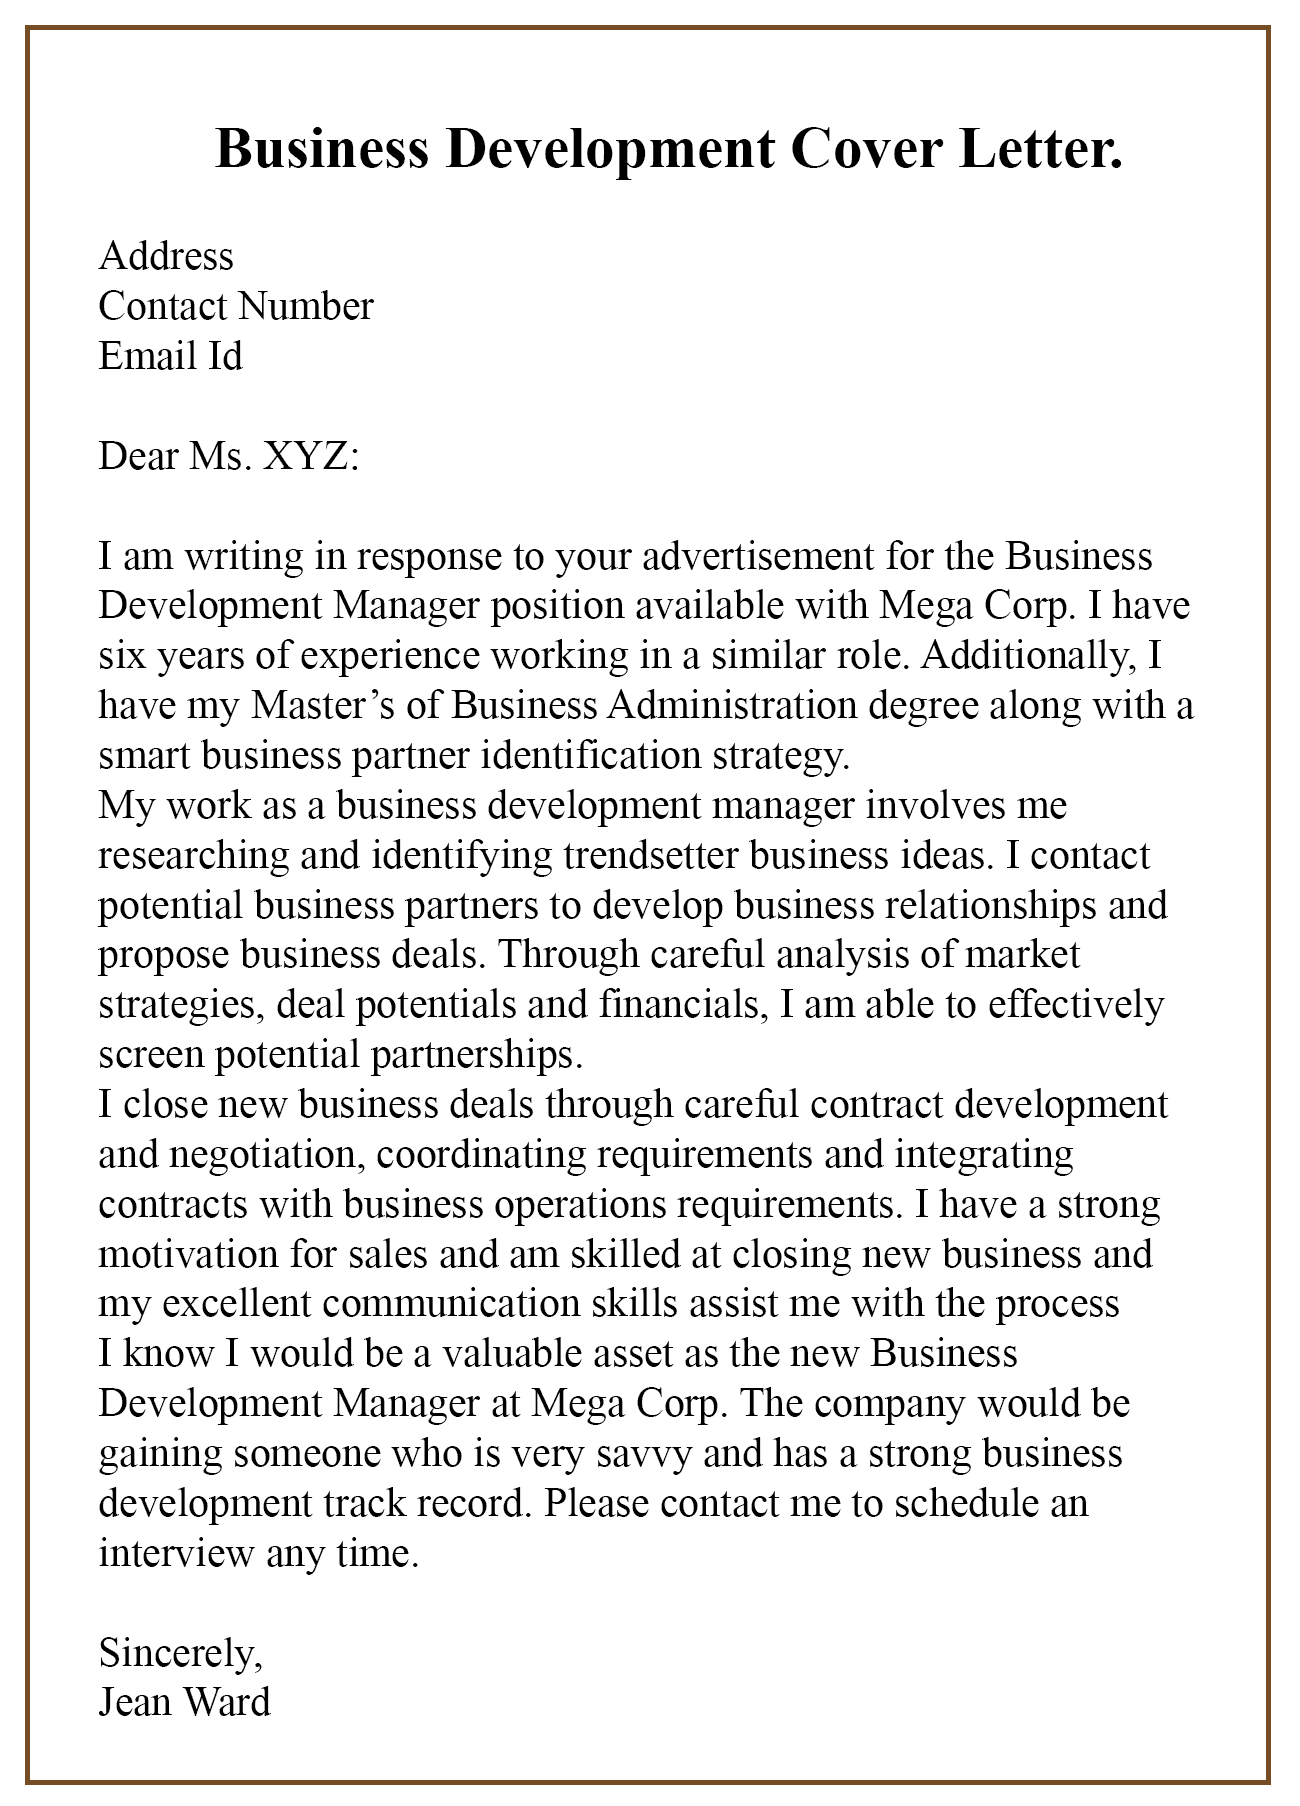 Business Development Letter Sample